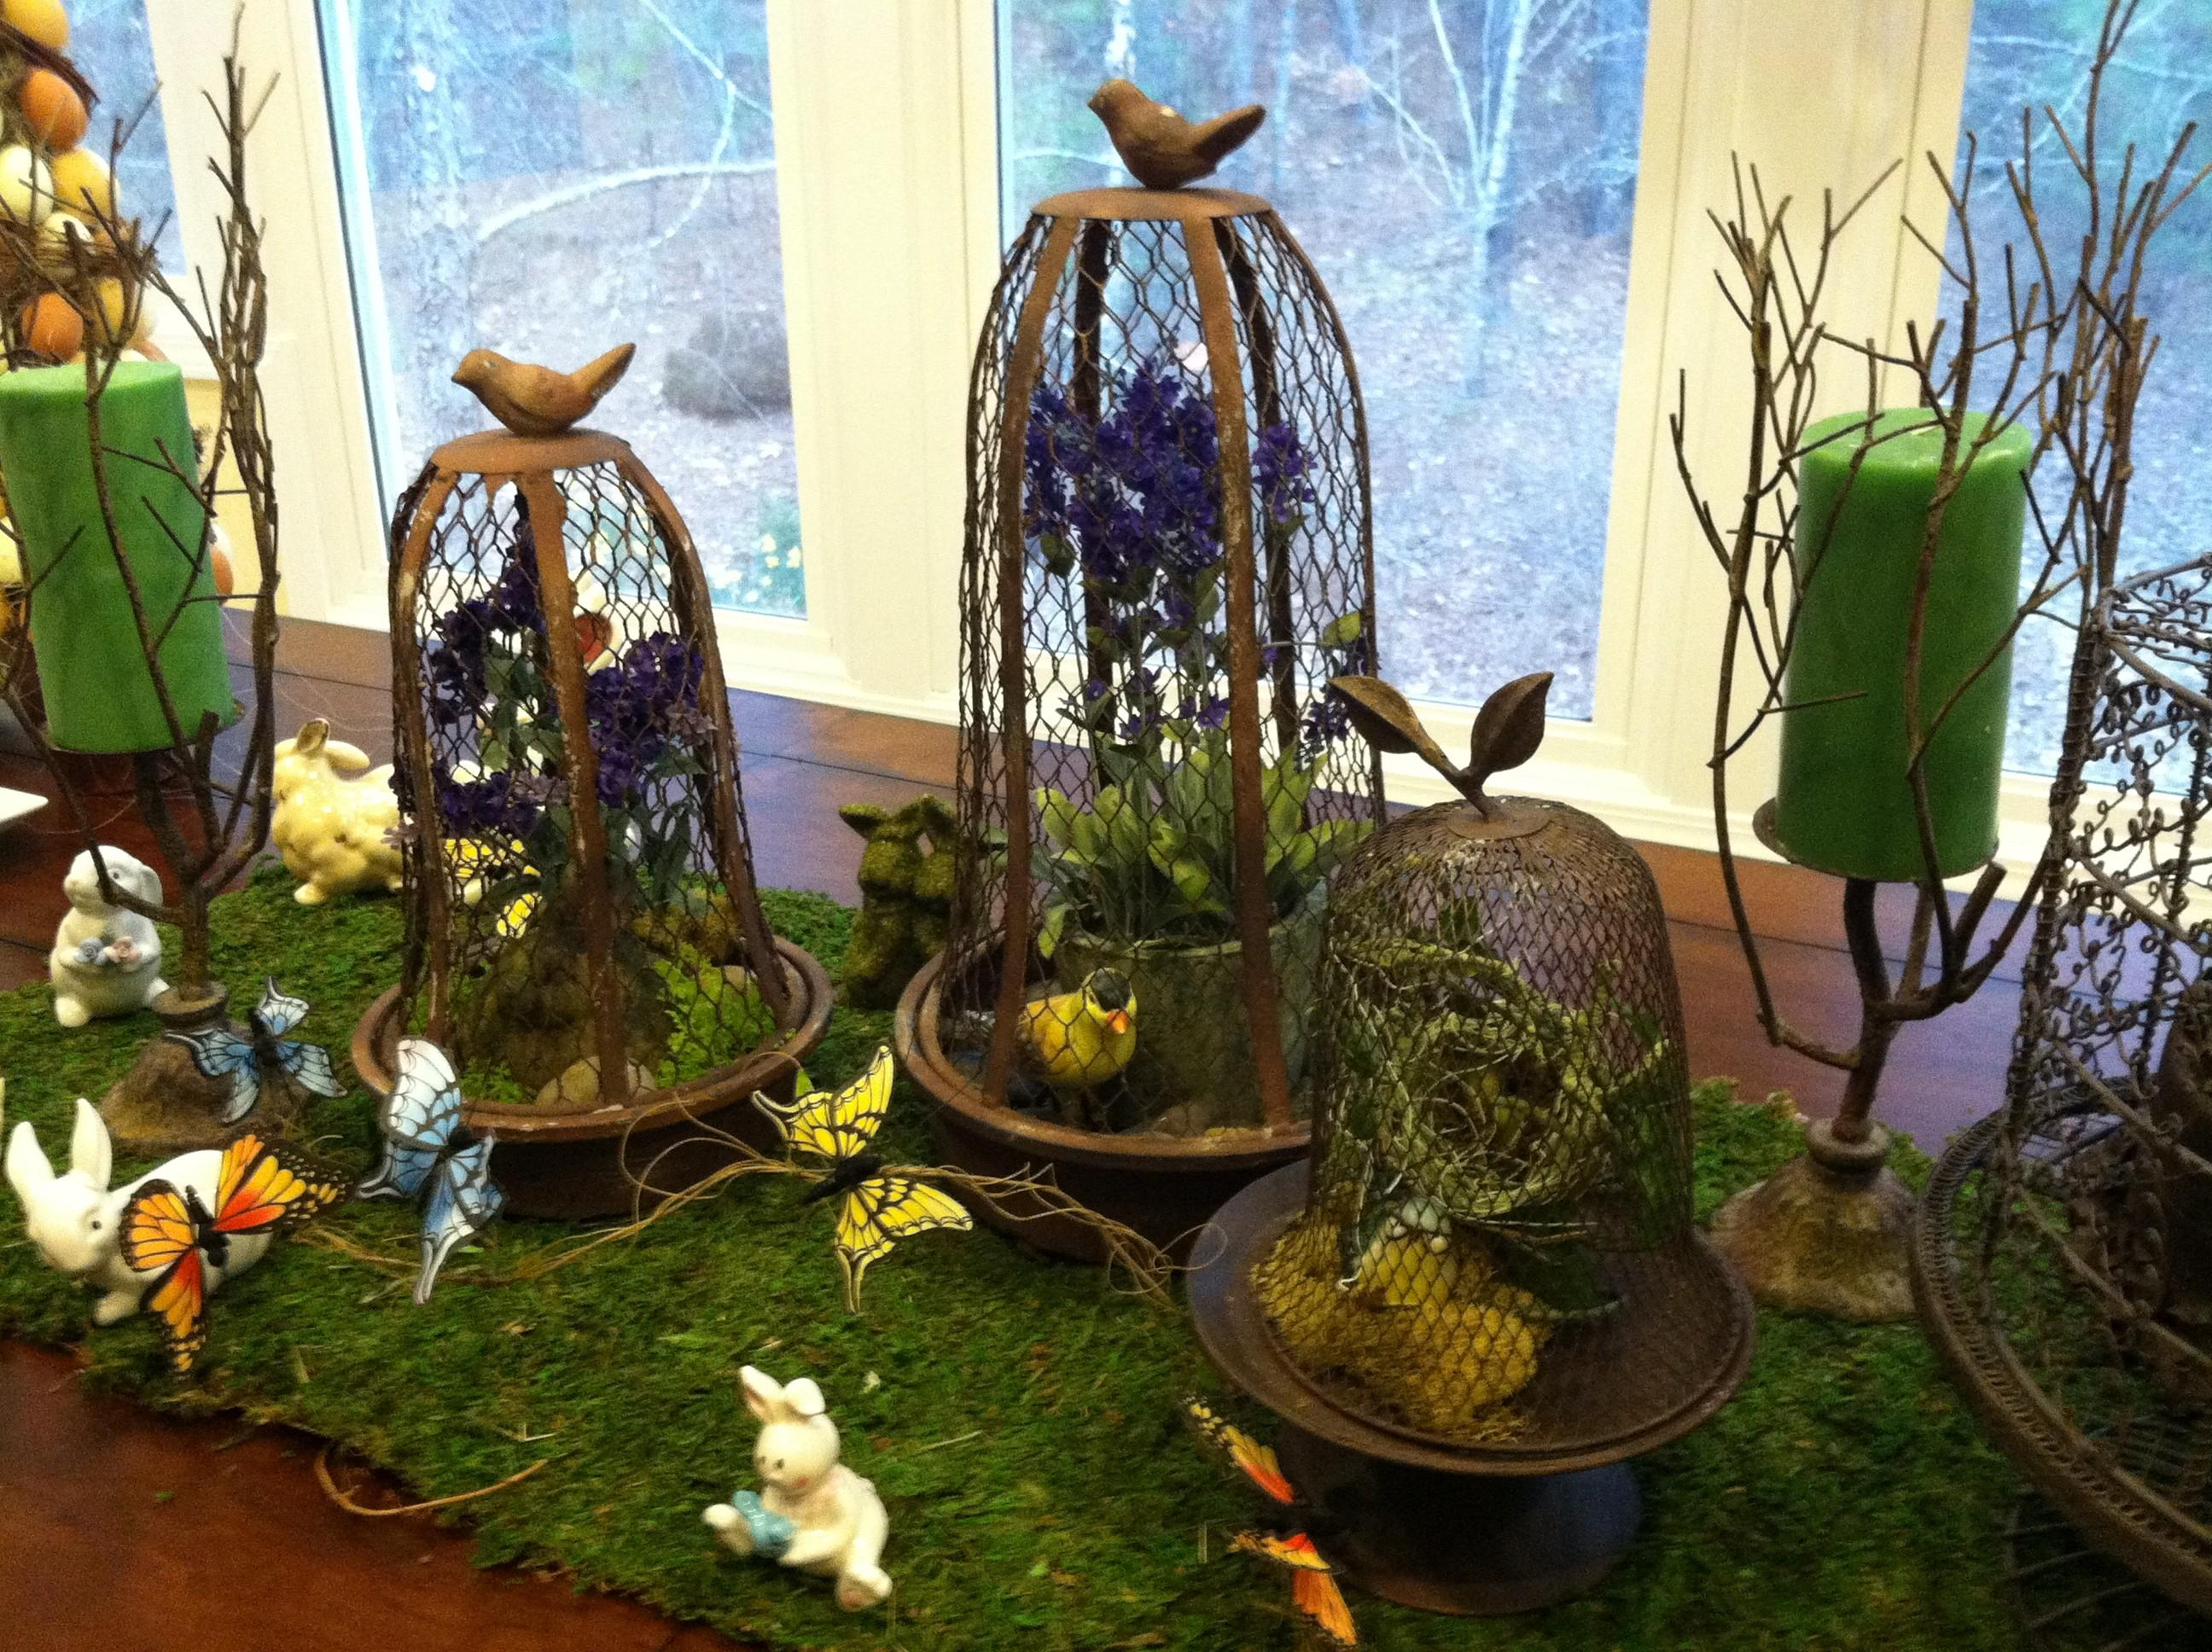 Rustic Easter Table Setting Decor